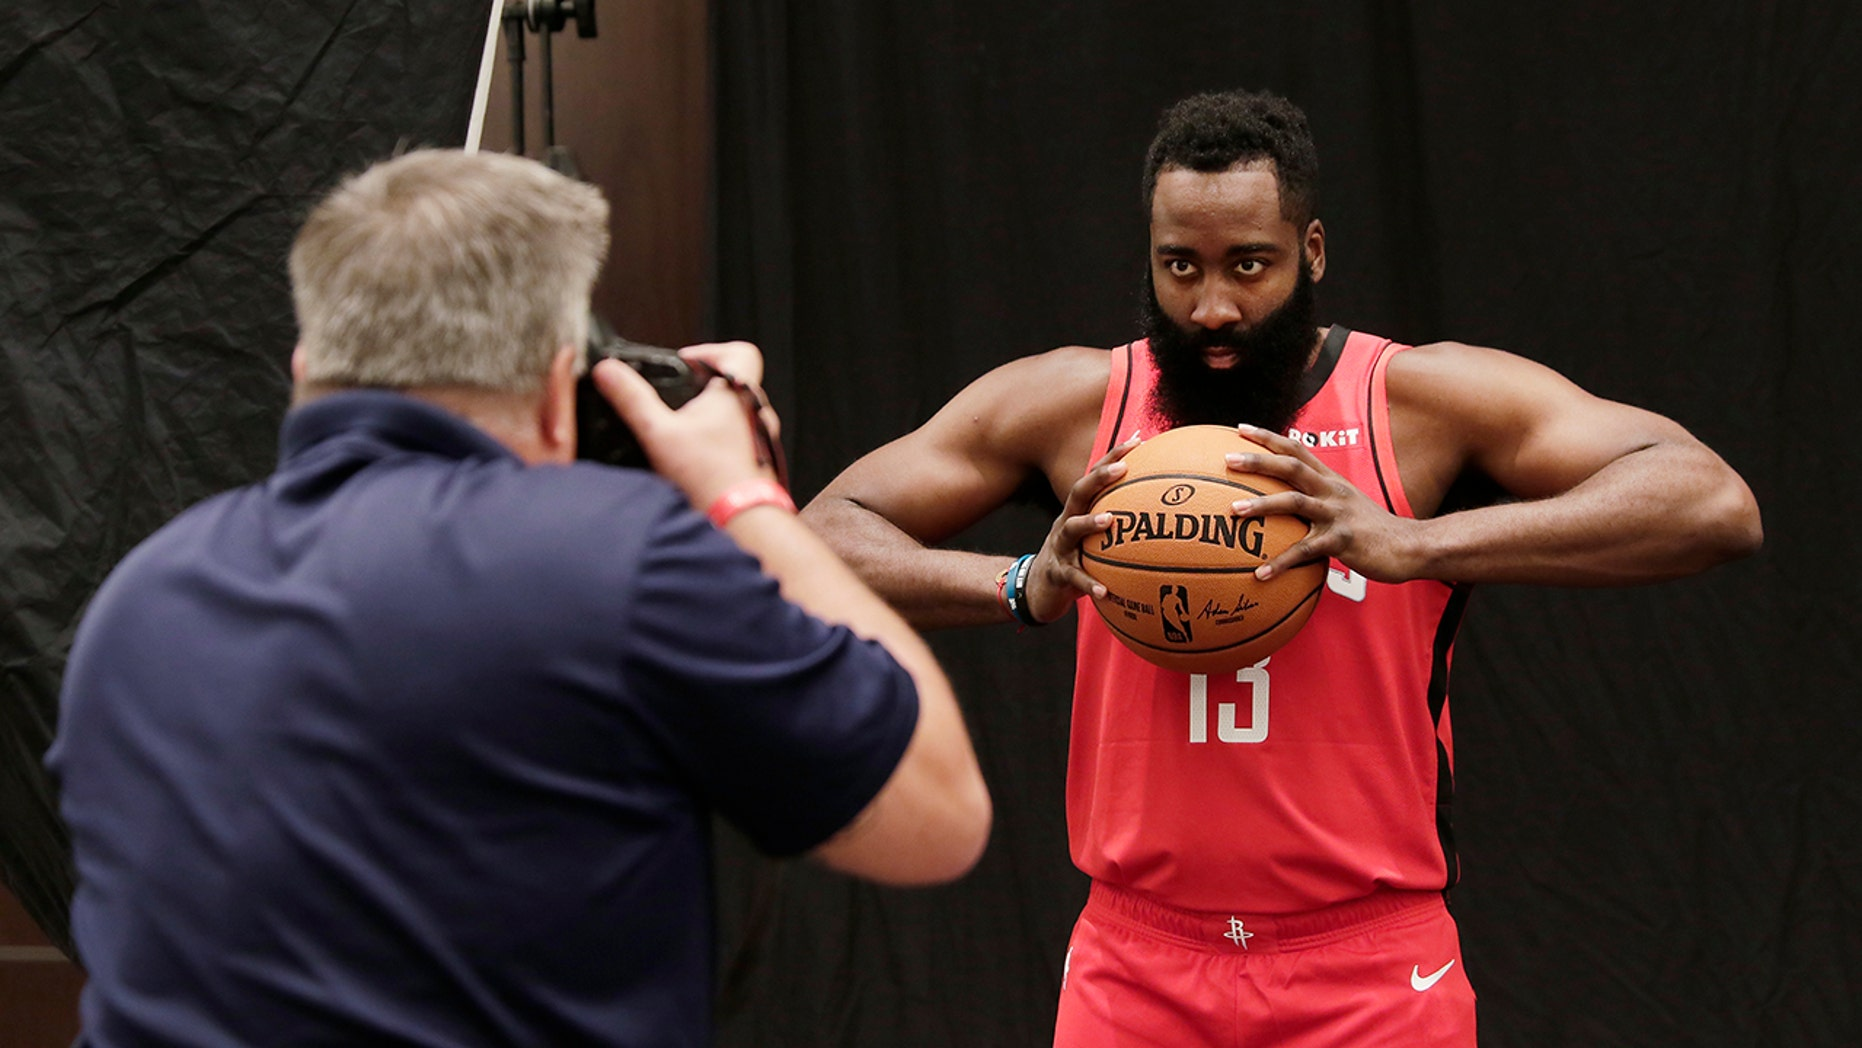 Westlake Legal Group NBA-James-Harden5 NBA referees aim to make traveling take a walk fox-news/sports/nba/houston-rockets fox-news/sports/nba fnc/sports fnc Associated Press article 52e45b46-d03c-5d56-ad18-d94f0939279d